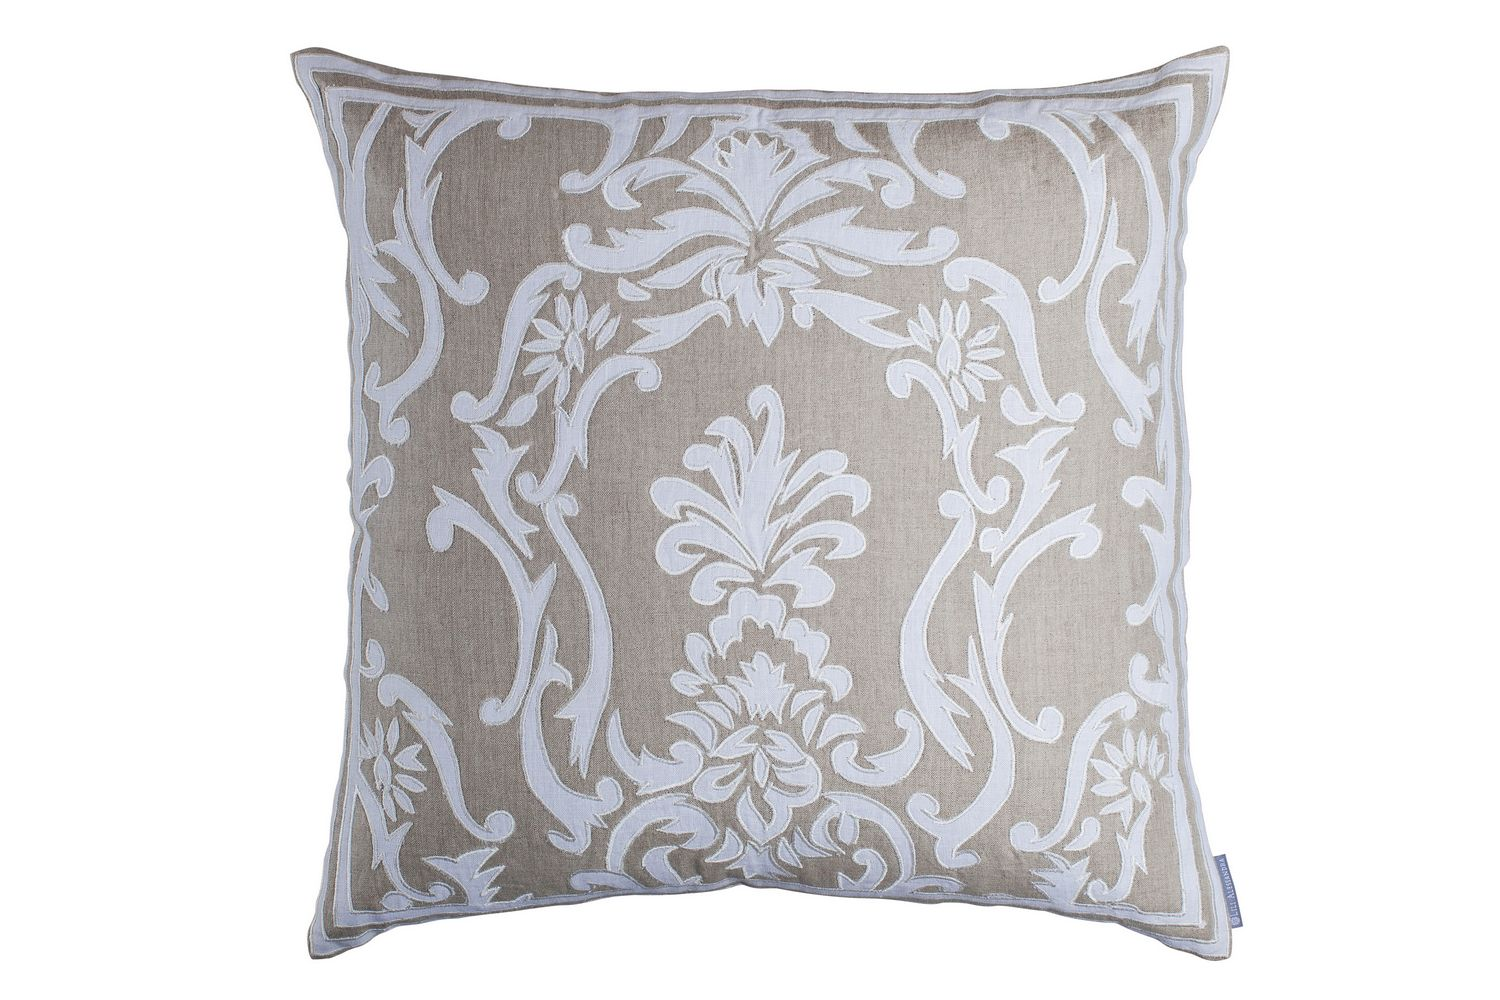 Lili Alessandra Louie Natural/White Linen Square Pillow